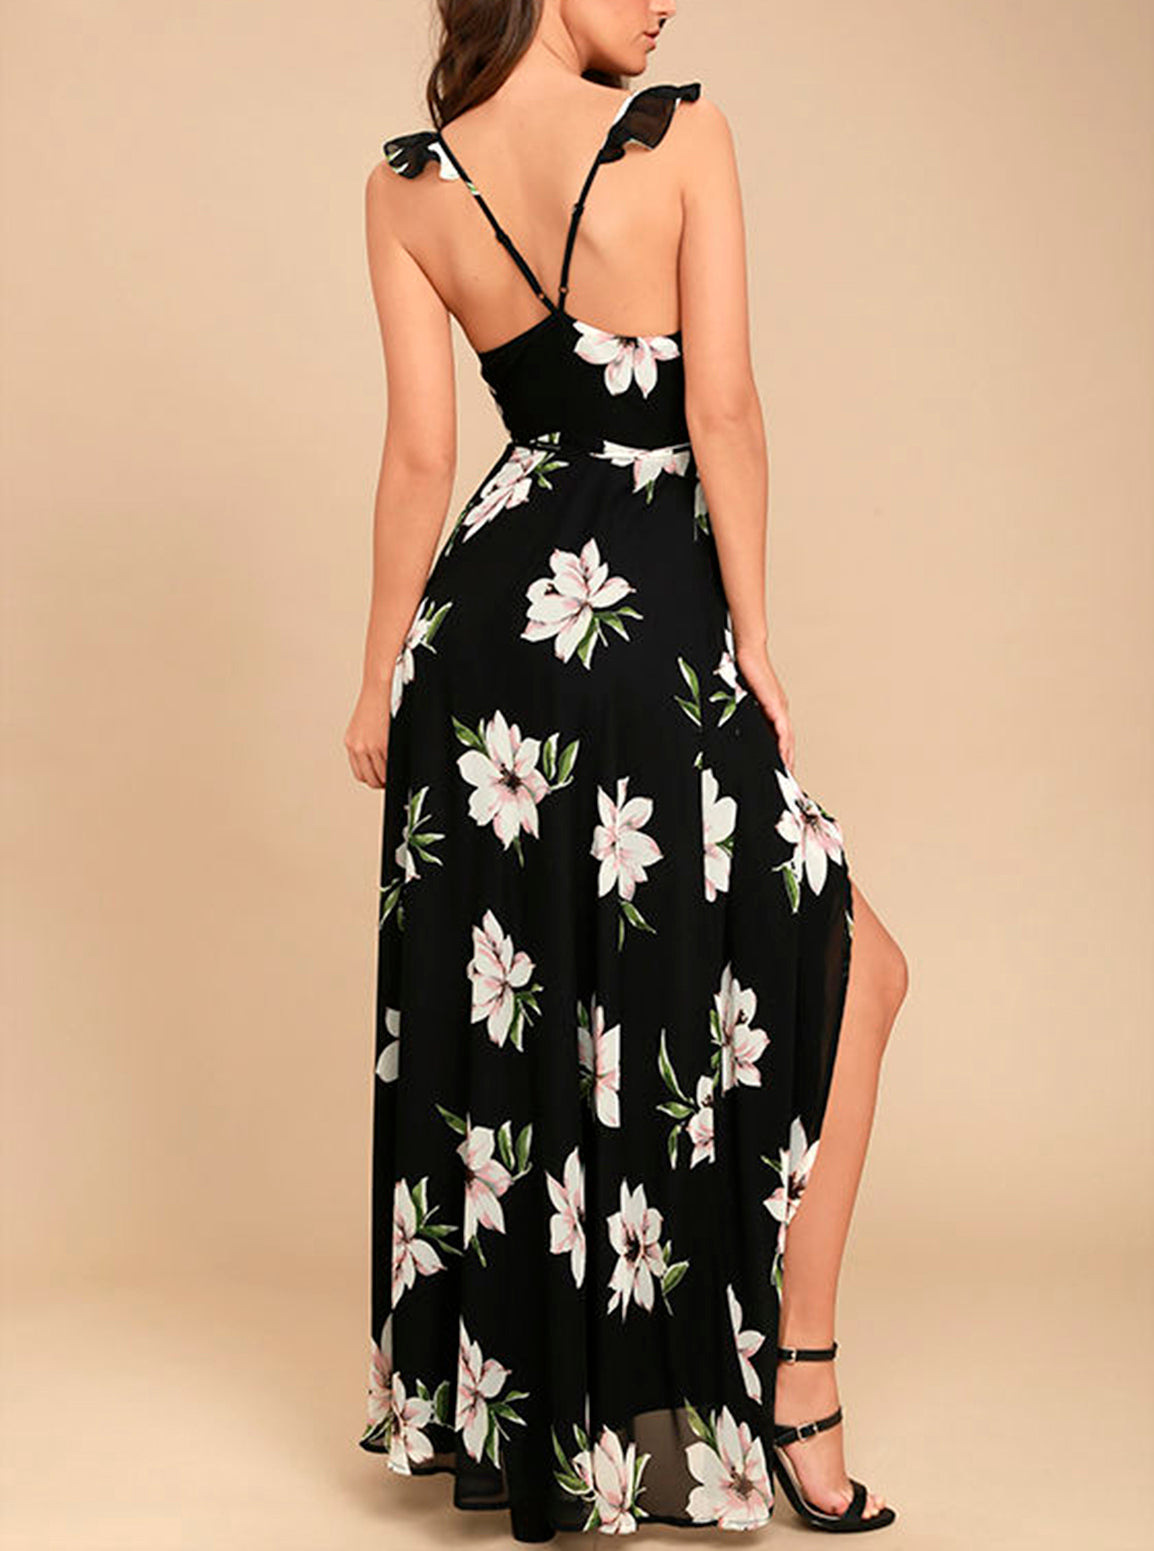 Halter Backless Flowy Summer Maxi Dress - Blooming Jelly